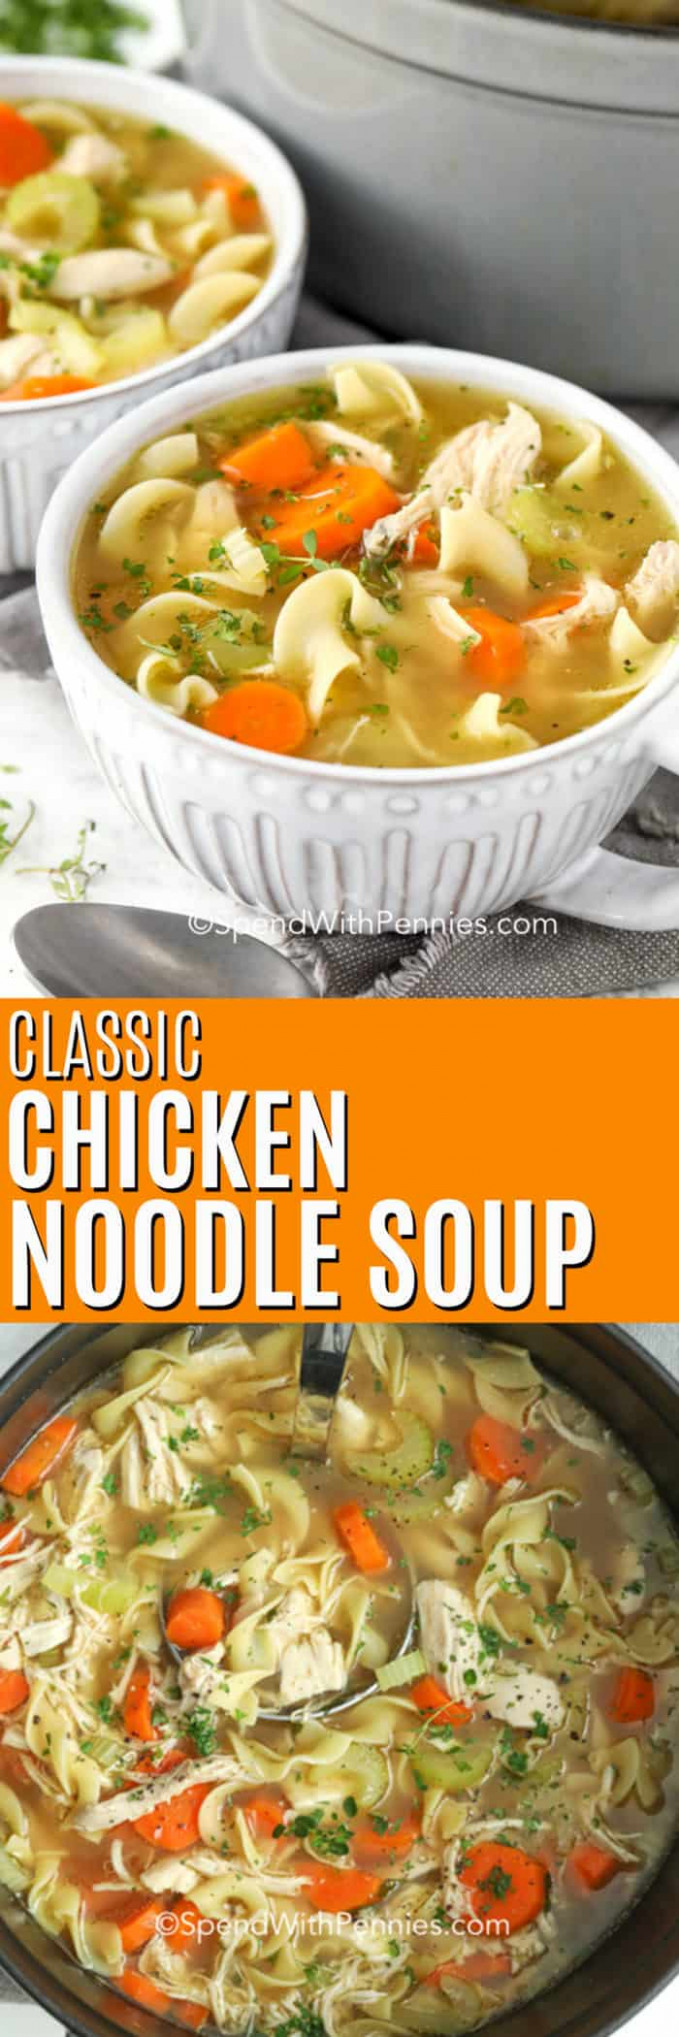 Classic Chicken Noodle Soup Ready in 15 Mins! - Spend With ..